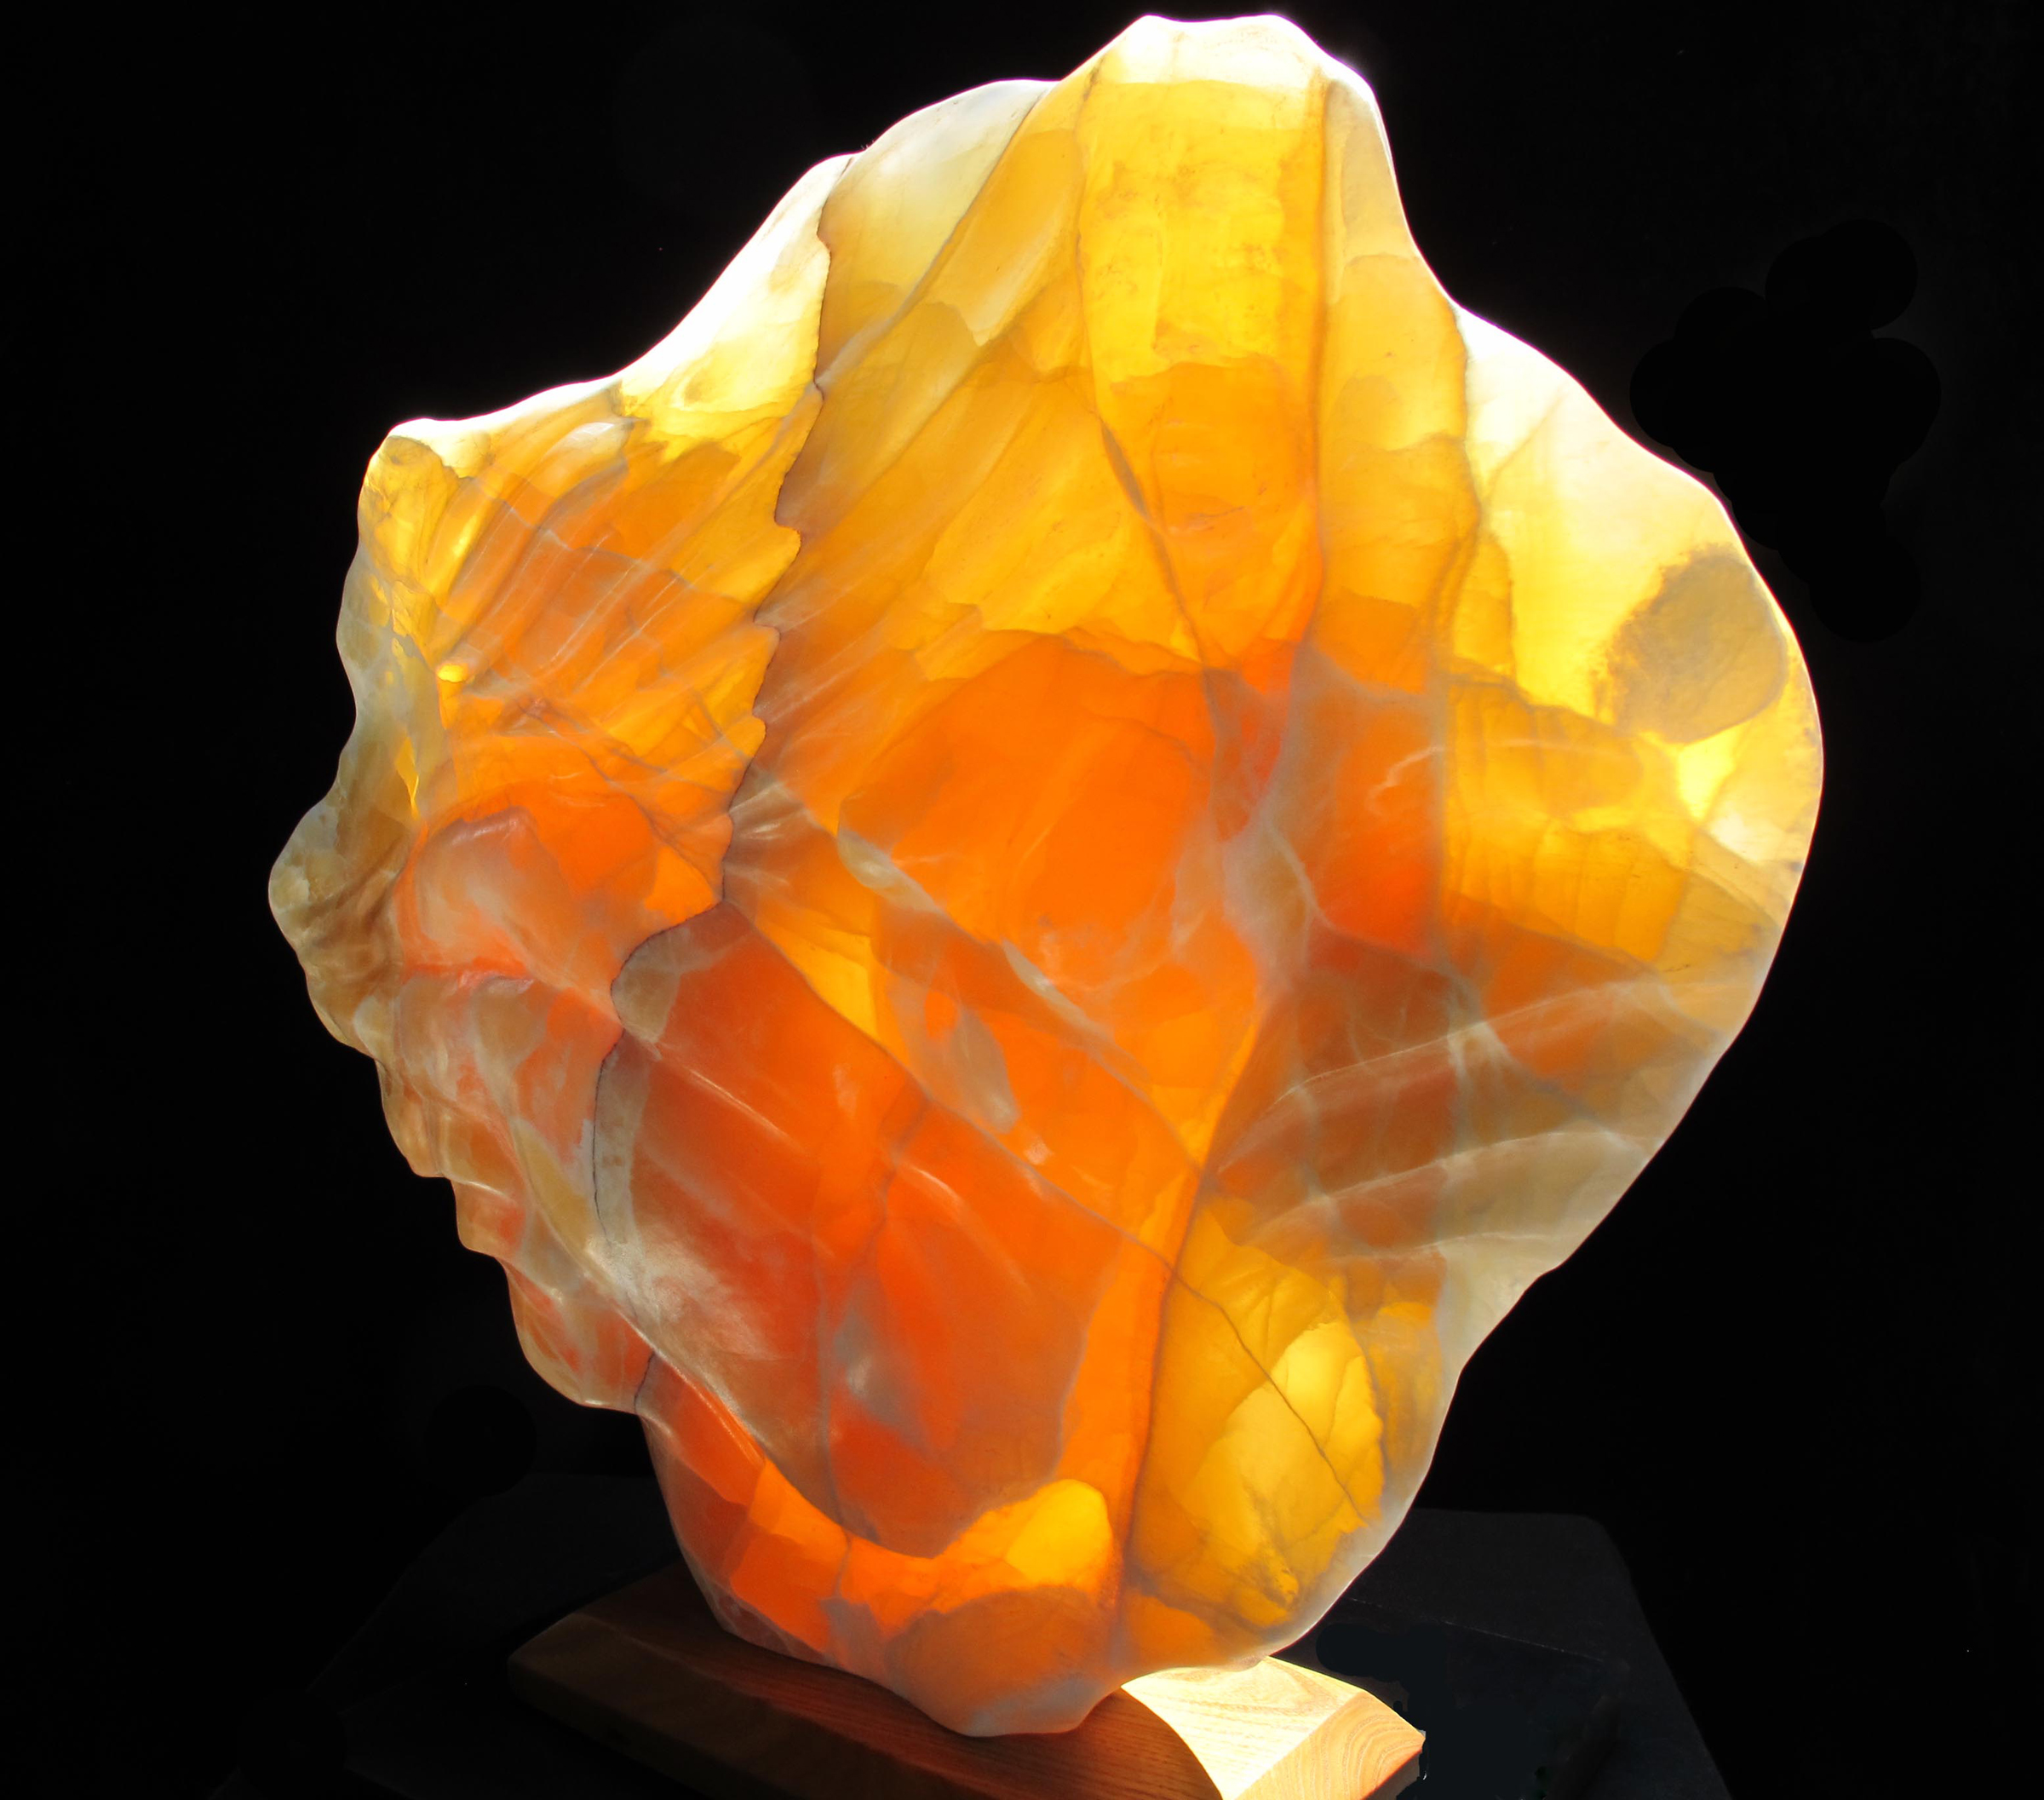 242 Woman in Calcite-1